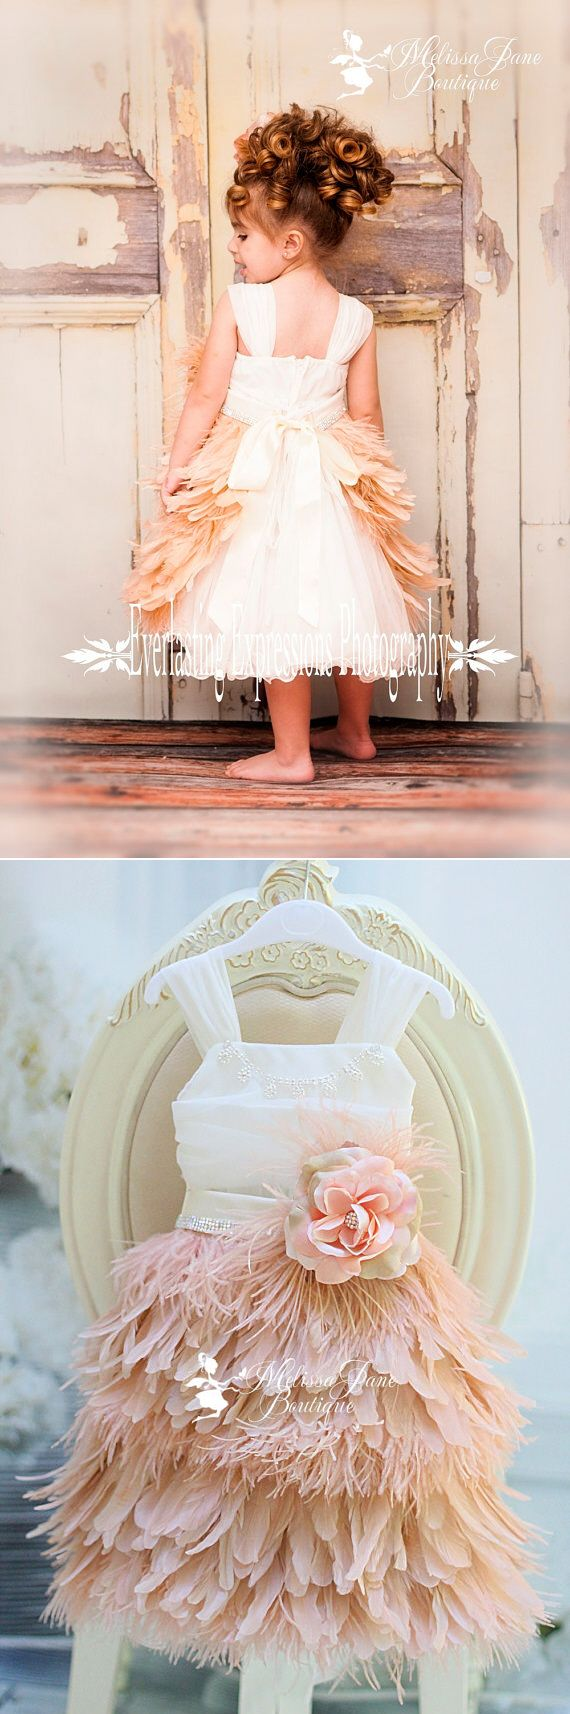 Dresses to wear to a wedding as a guest in april  Pin by Shirley Hawn on Sugar and spice  Pinterest  Flower girl